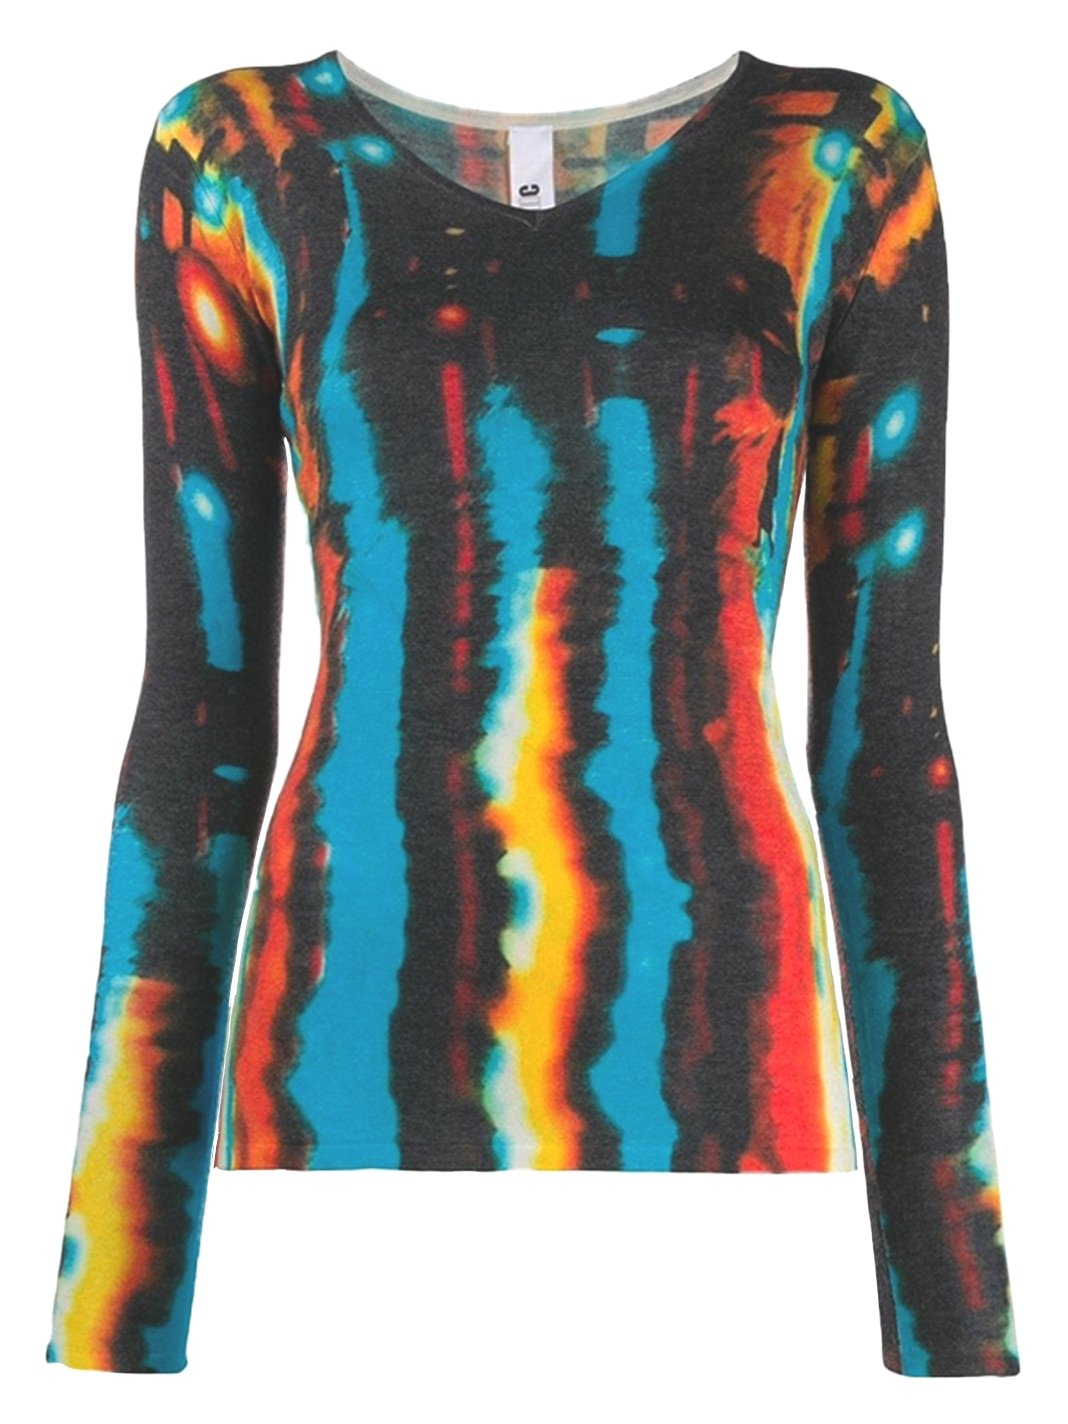 Rain Tie-Dye Fitted Knit Top - The Bobby Boga